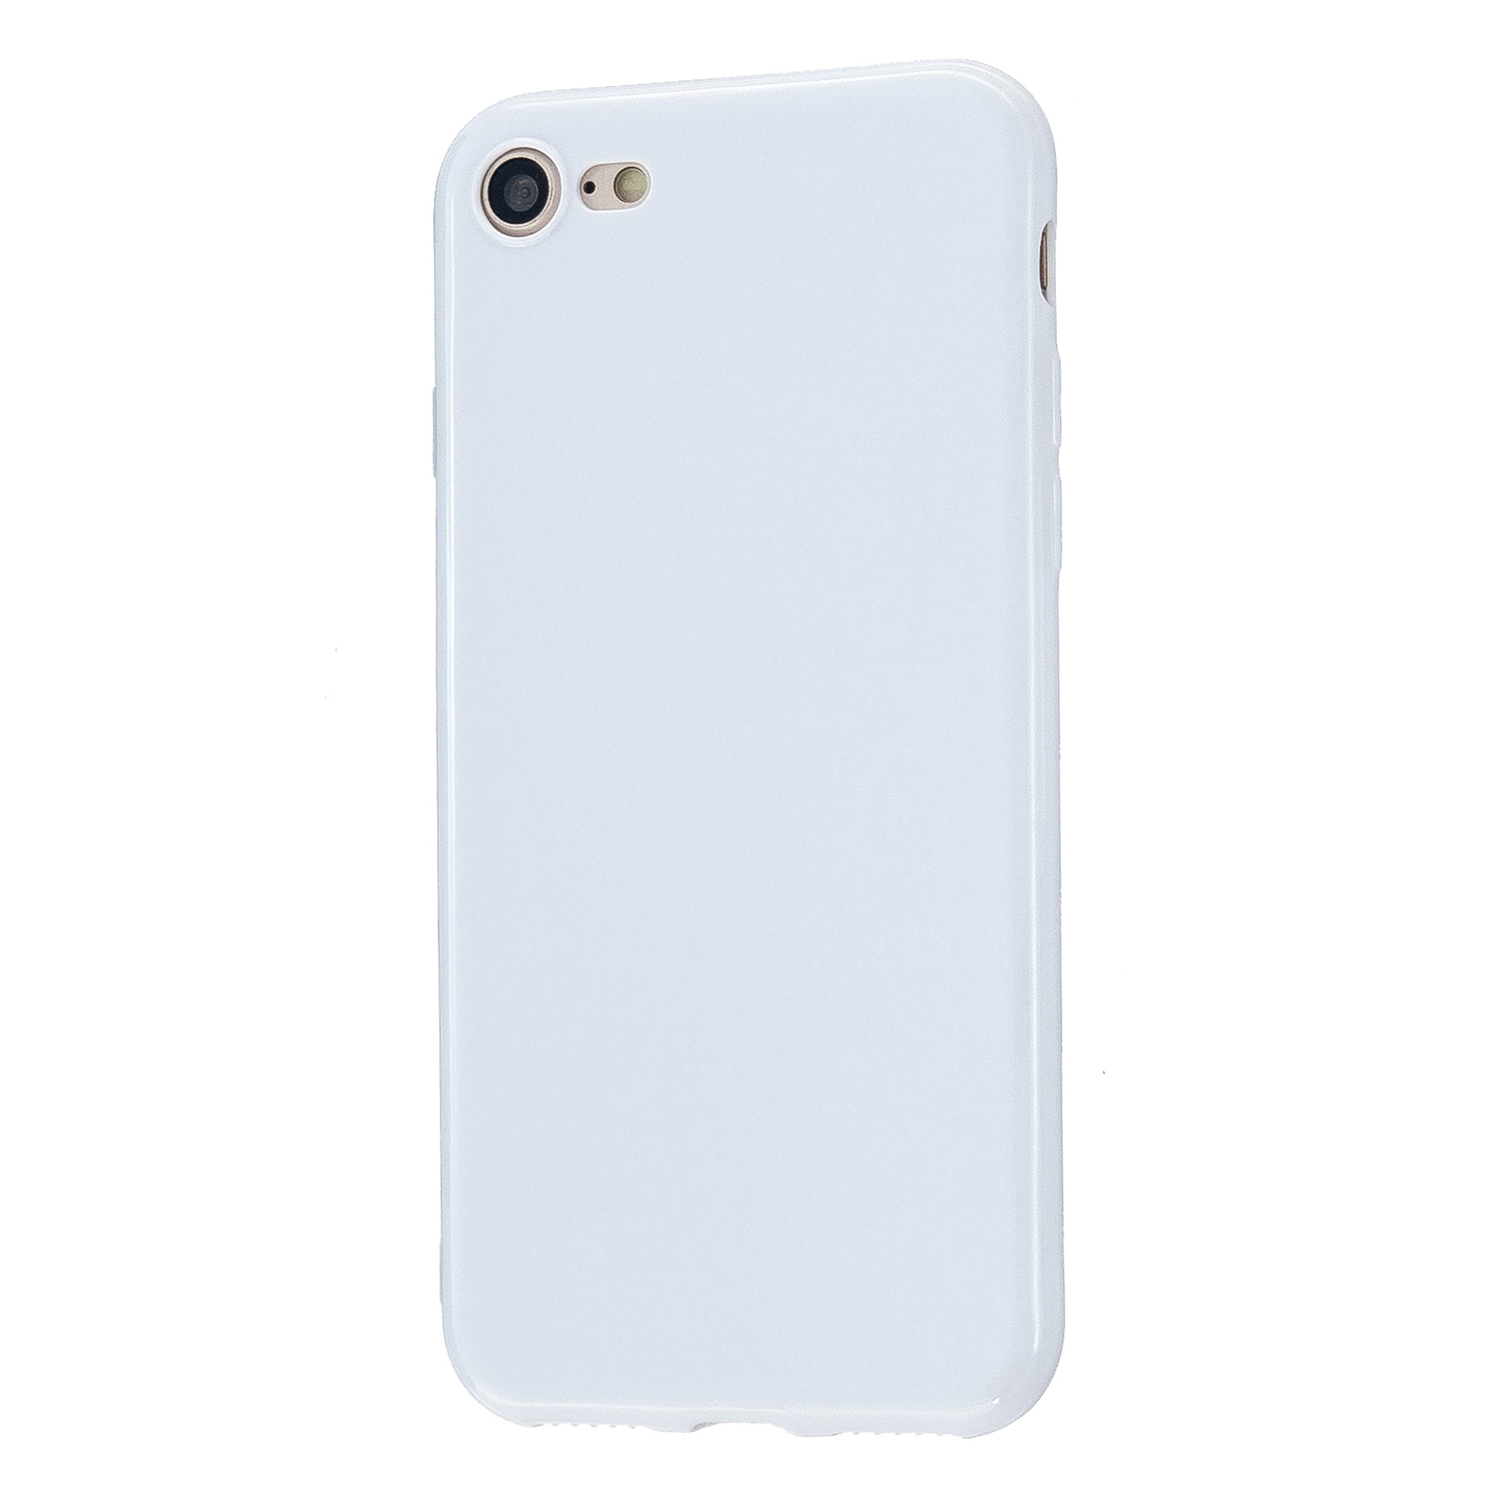 For iPhone 5/5S/SE/6/6S/6 Plus/6S Plus/7/8/7 Plus/8 Plus Cellphone Cover Soft TPU Bumper Protector Phone Shell Milk white